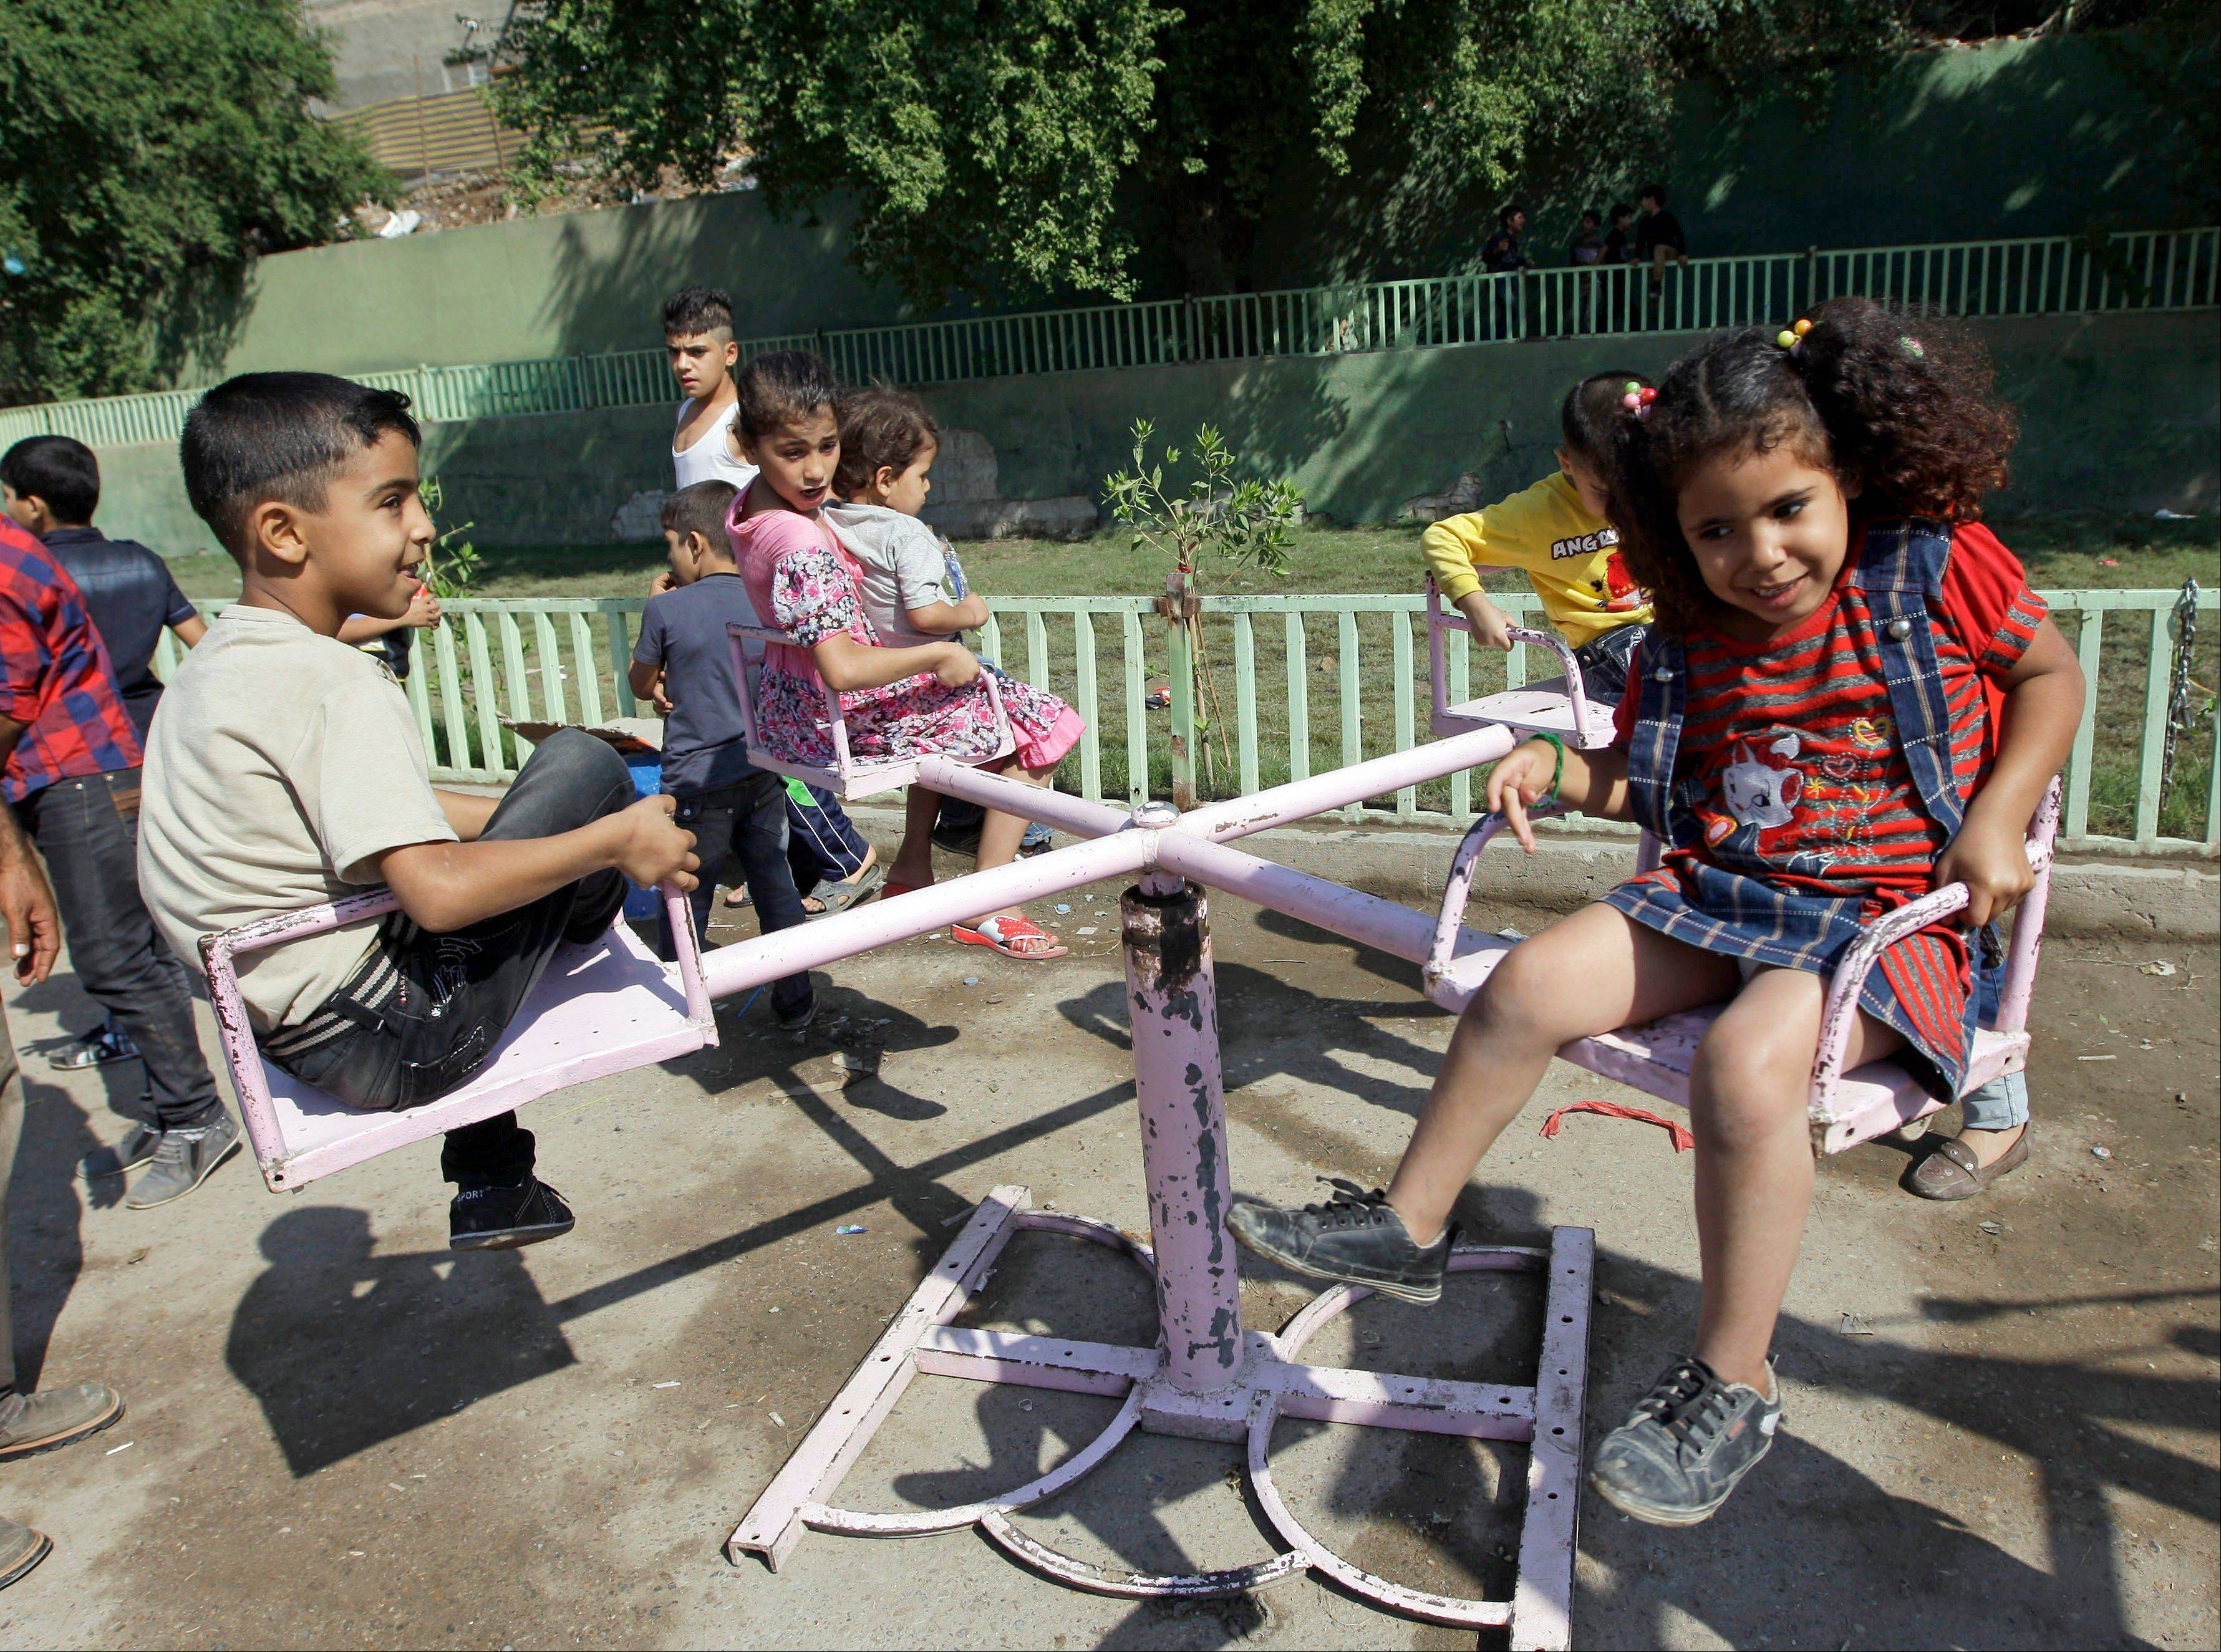 Iraqi children play during Eid al-Adha celebrations Saturday in Baghdad's Fadhil neighborhood, Iraq. A bombing near a playground and other insurgent attacks killed 31 people including several children in Iraq on Saturday.